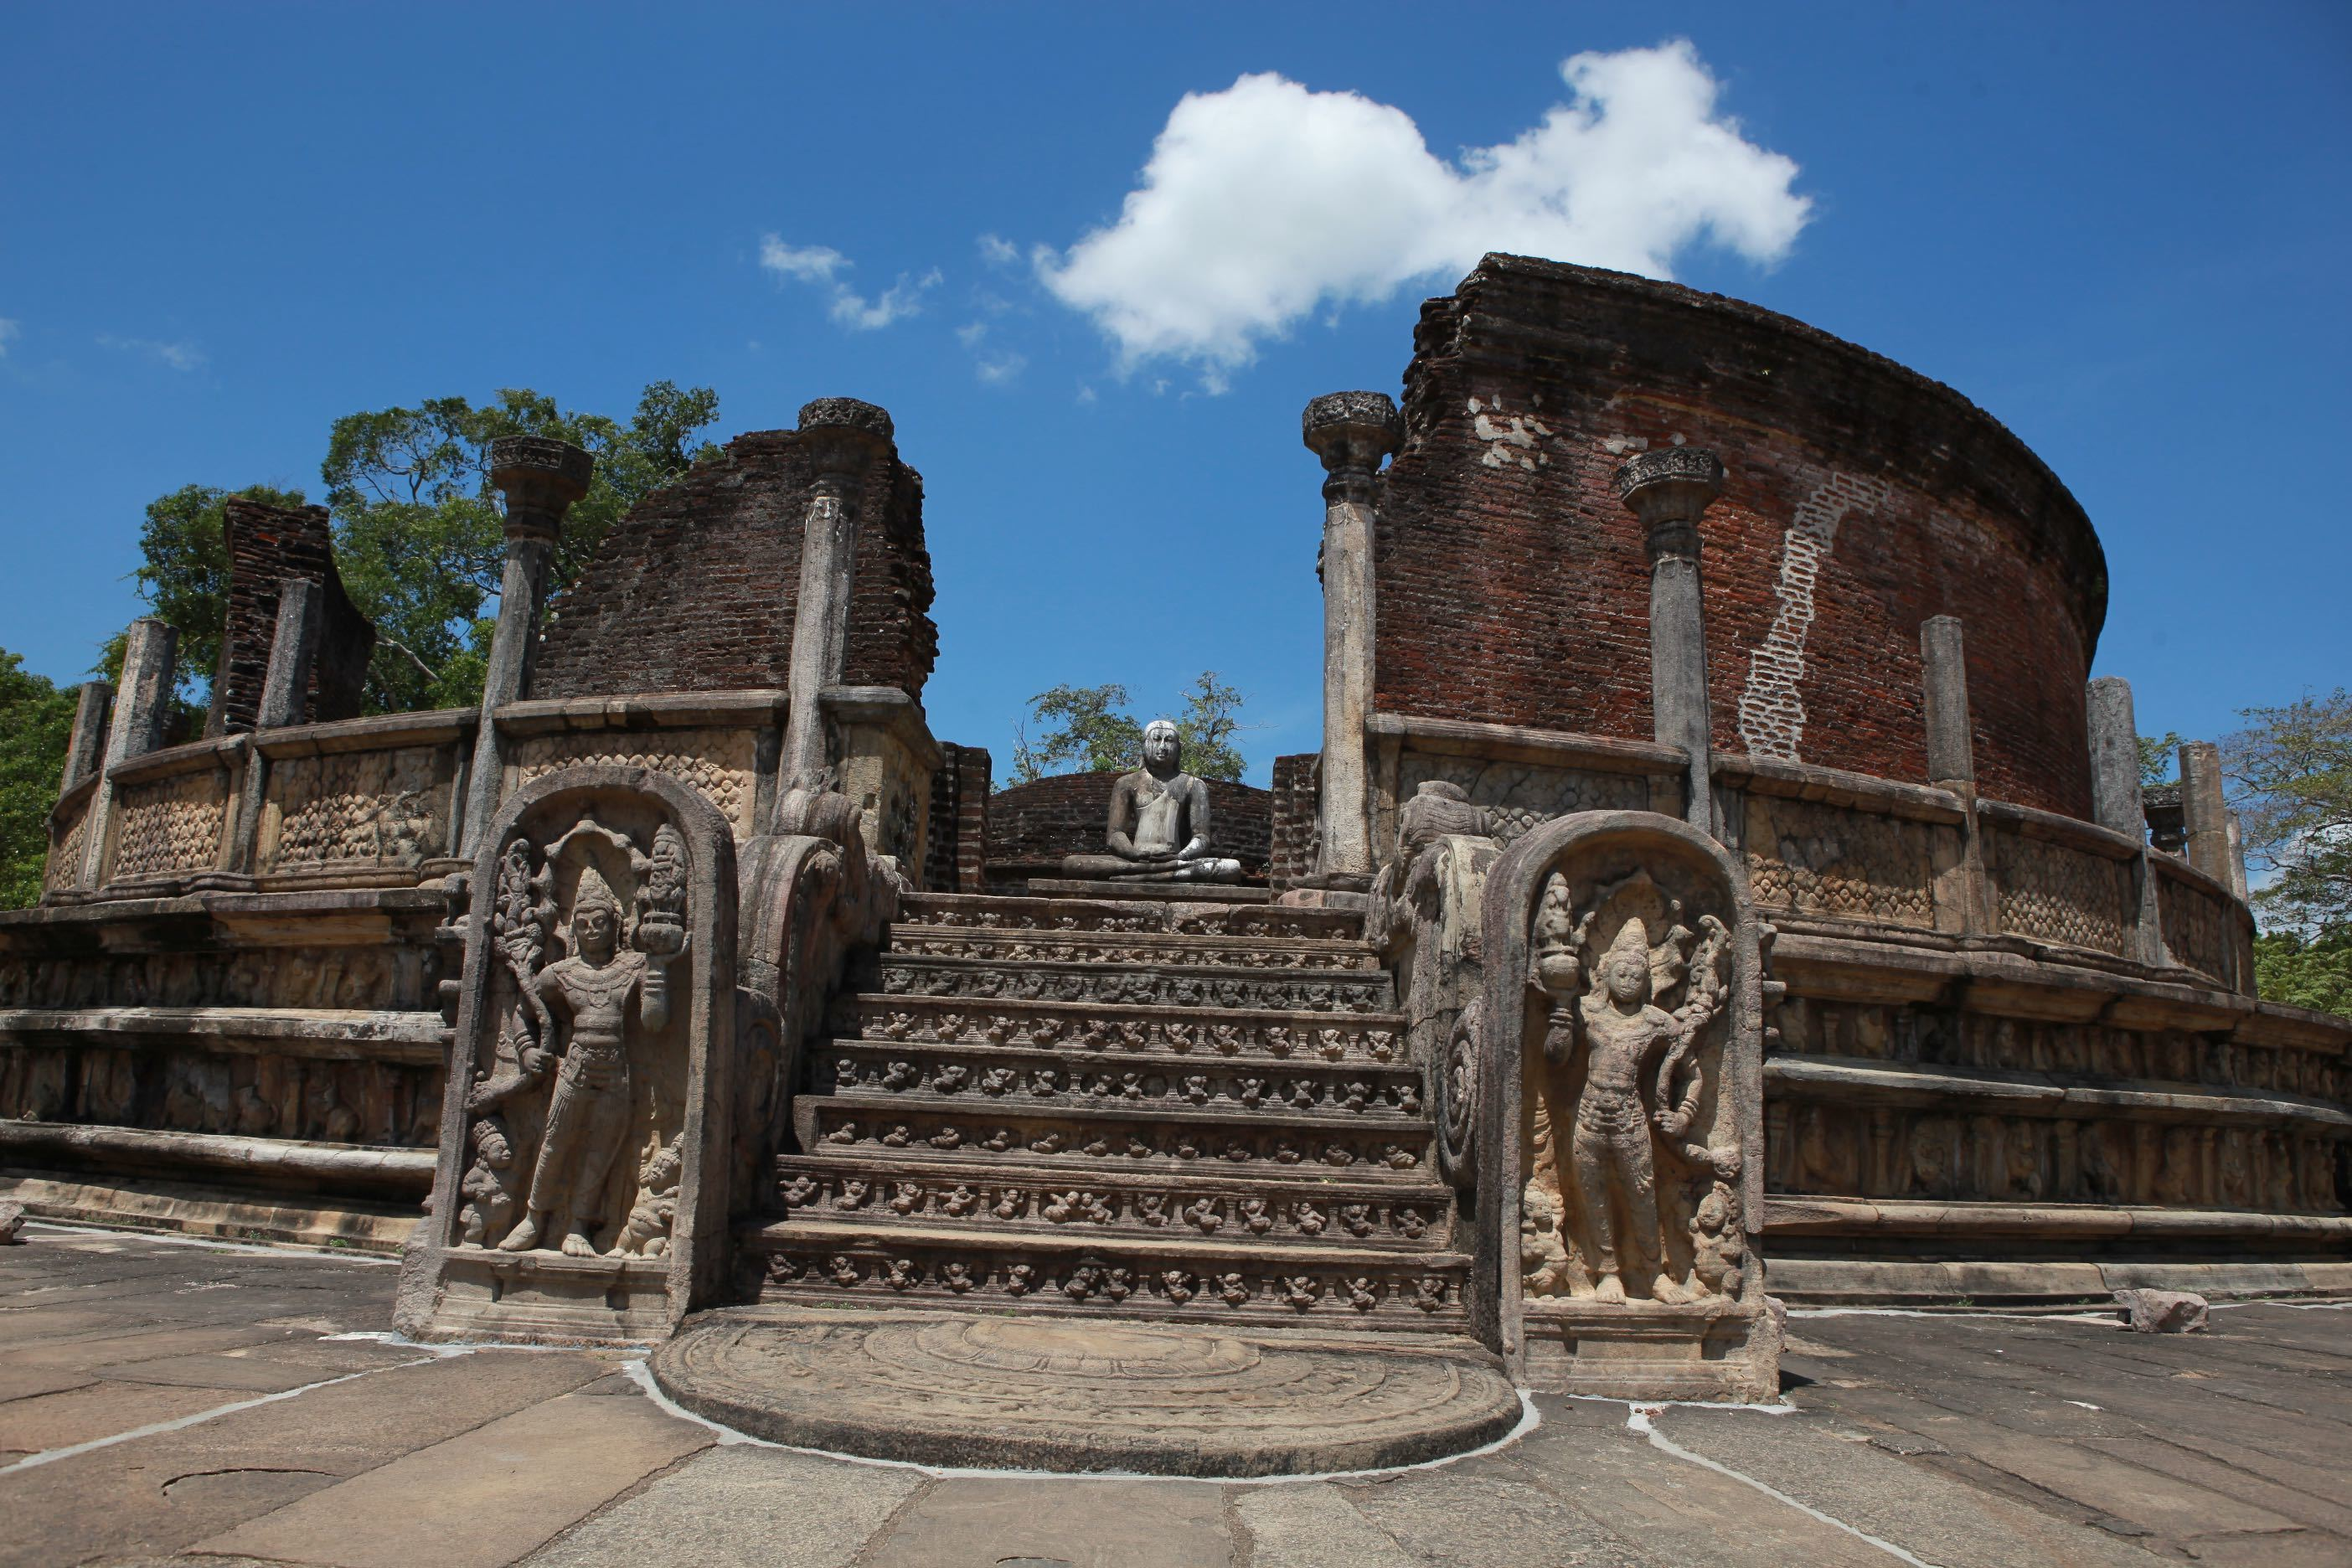 View the ruins of Polonnaruwa on a bicycle